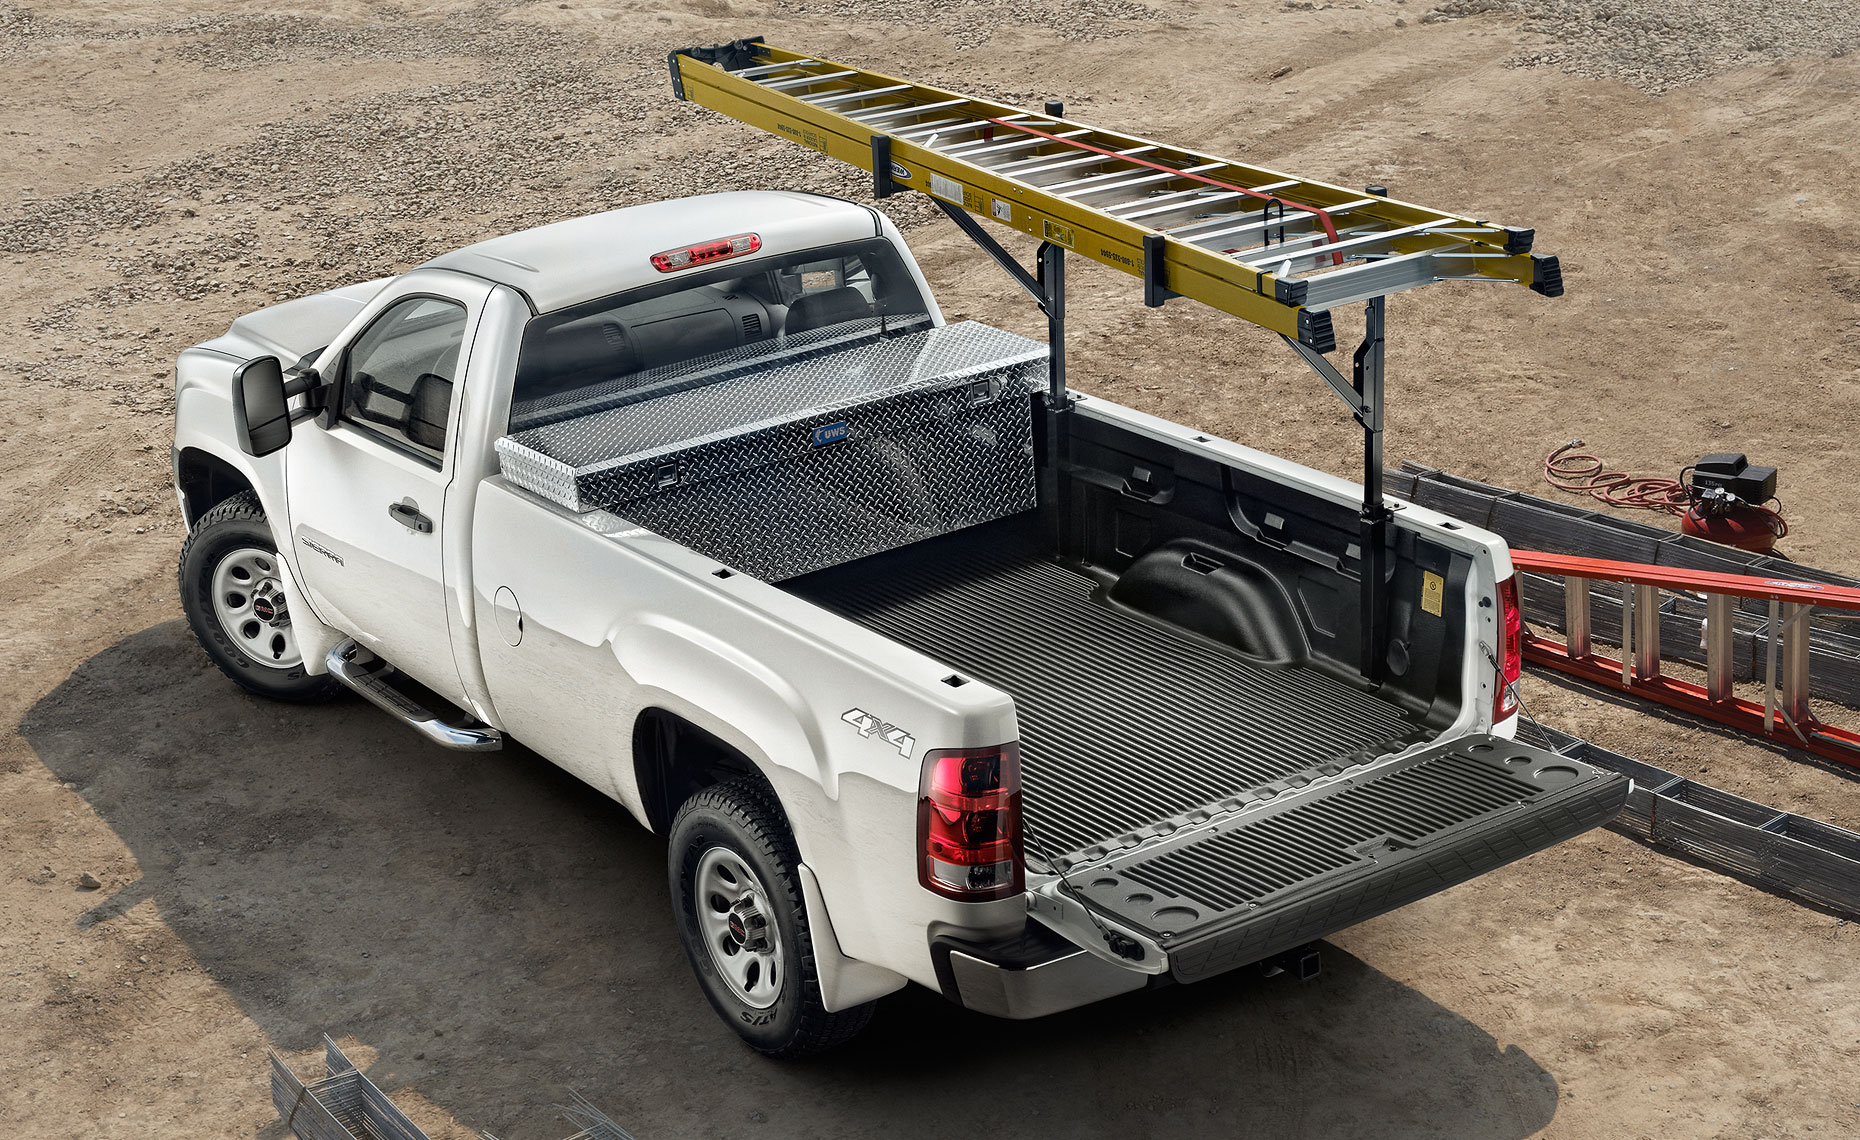 2013 gmc sierra-ladders-work site.jpg